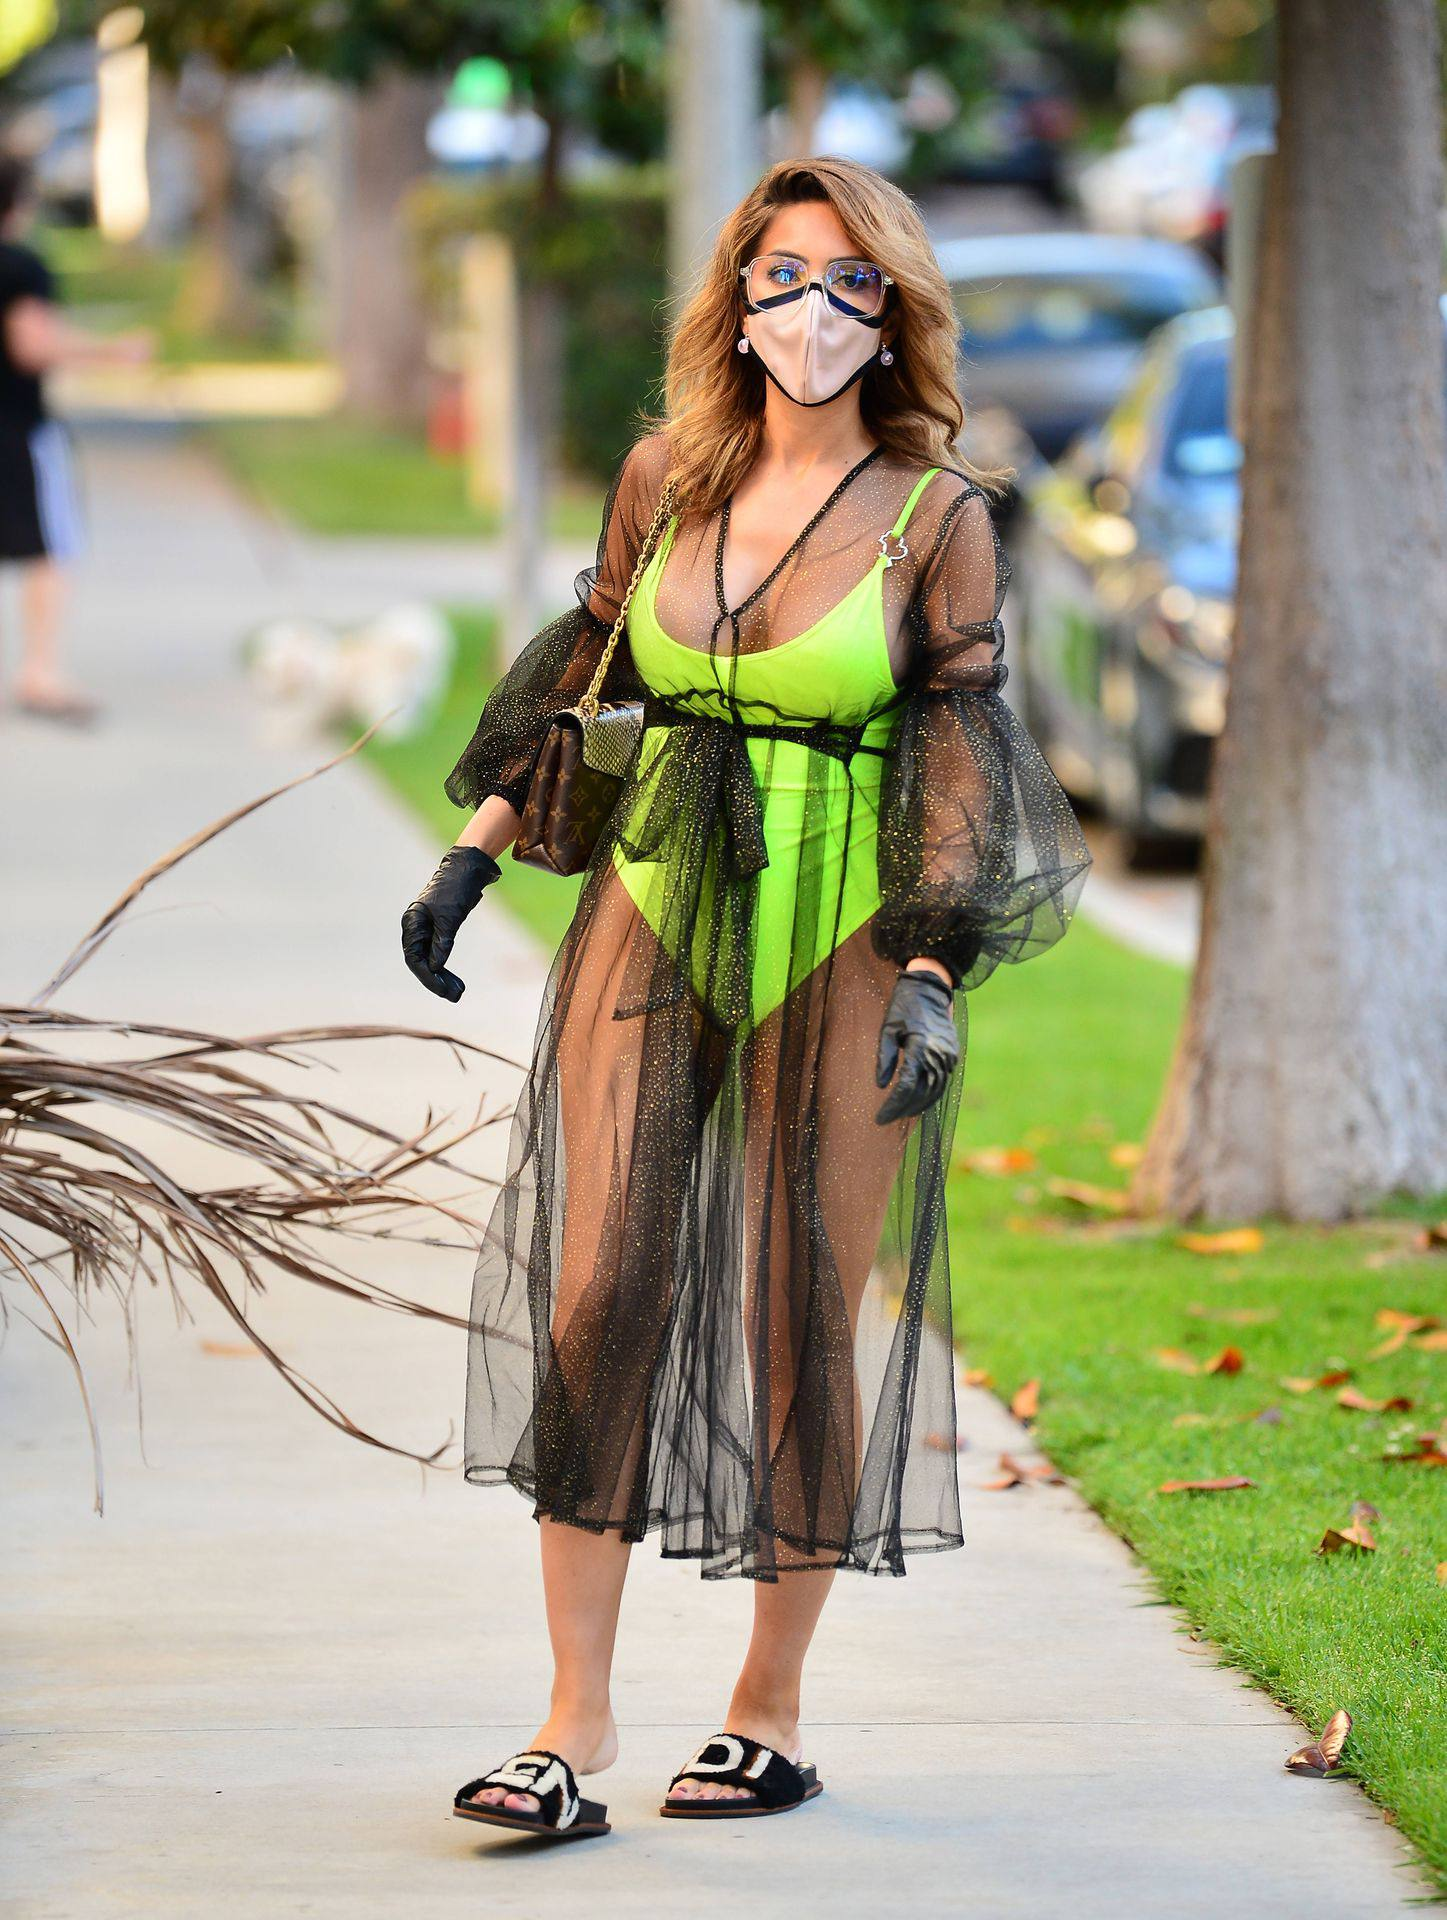 Farrah Abraham – Sexy Big Ass In Neon Green Swimsuit Out In Los Angeles 0017